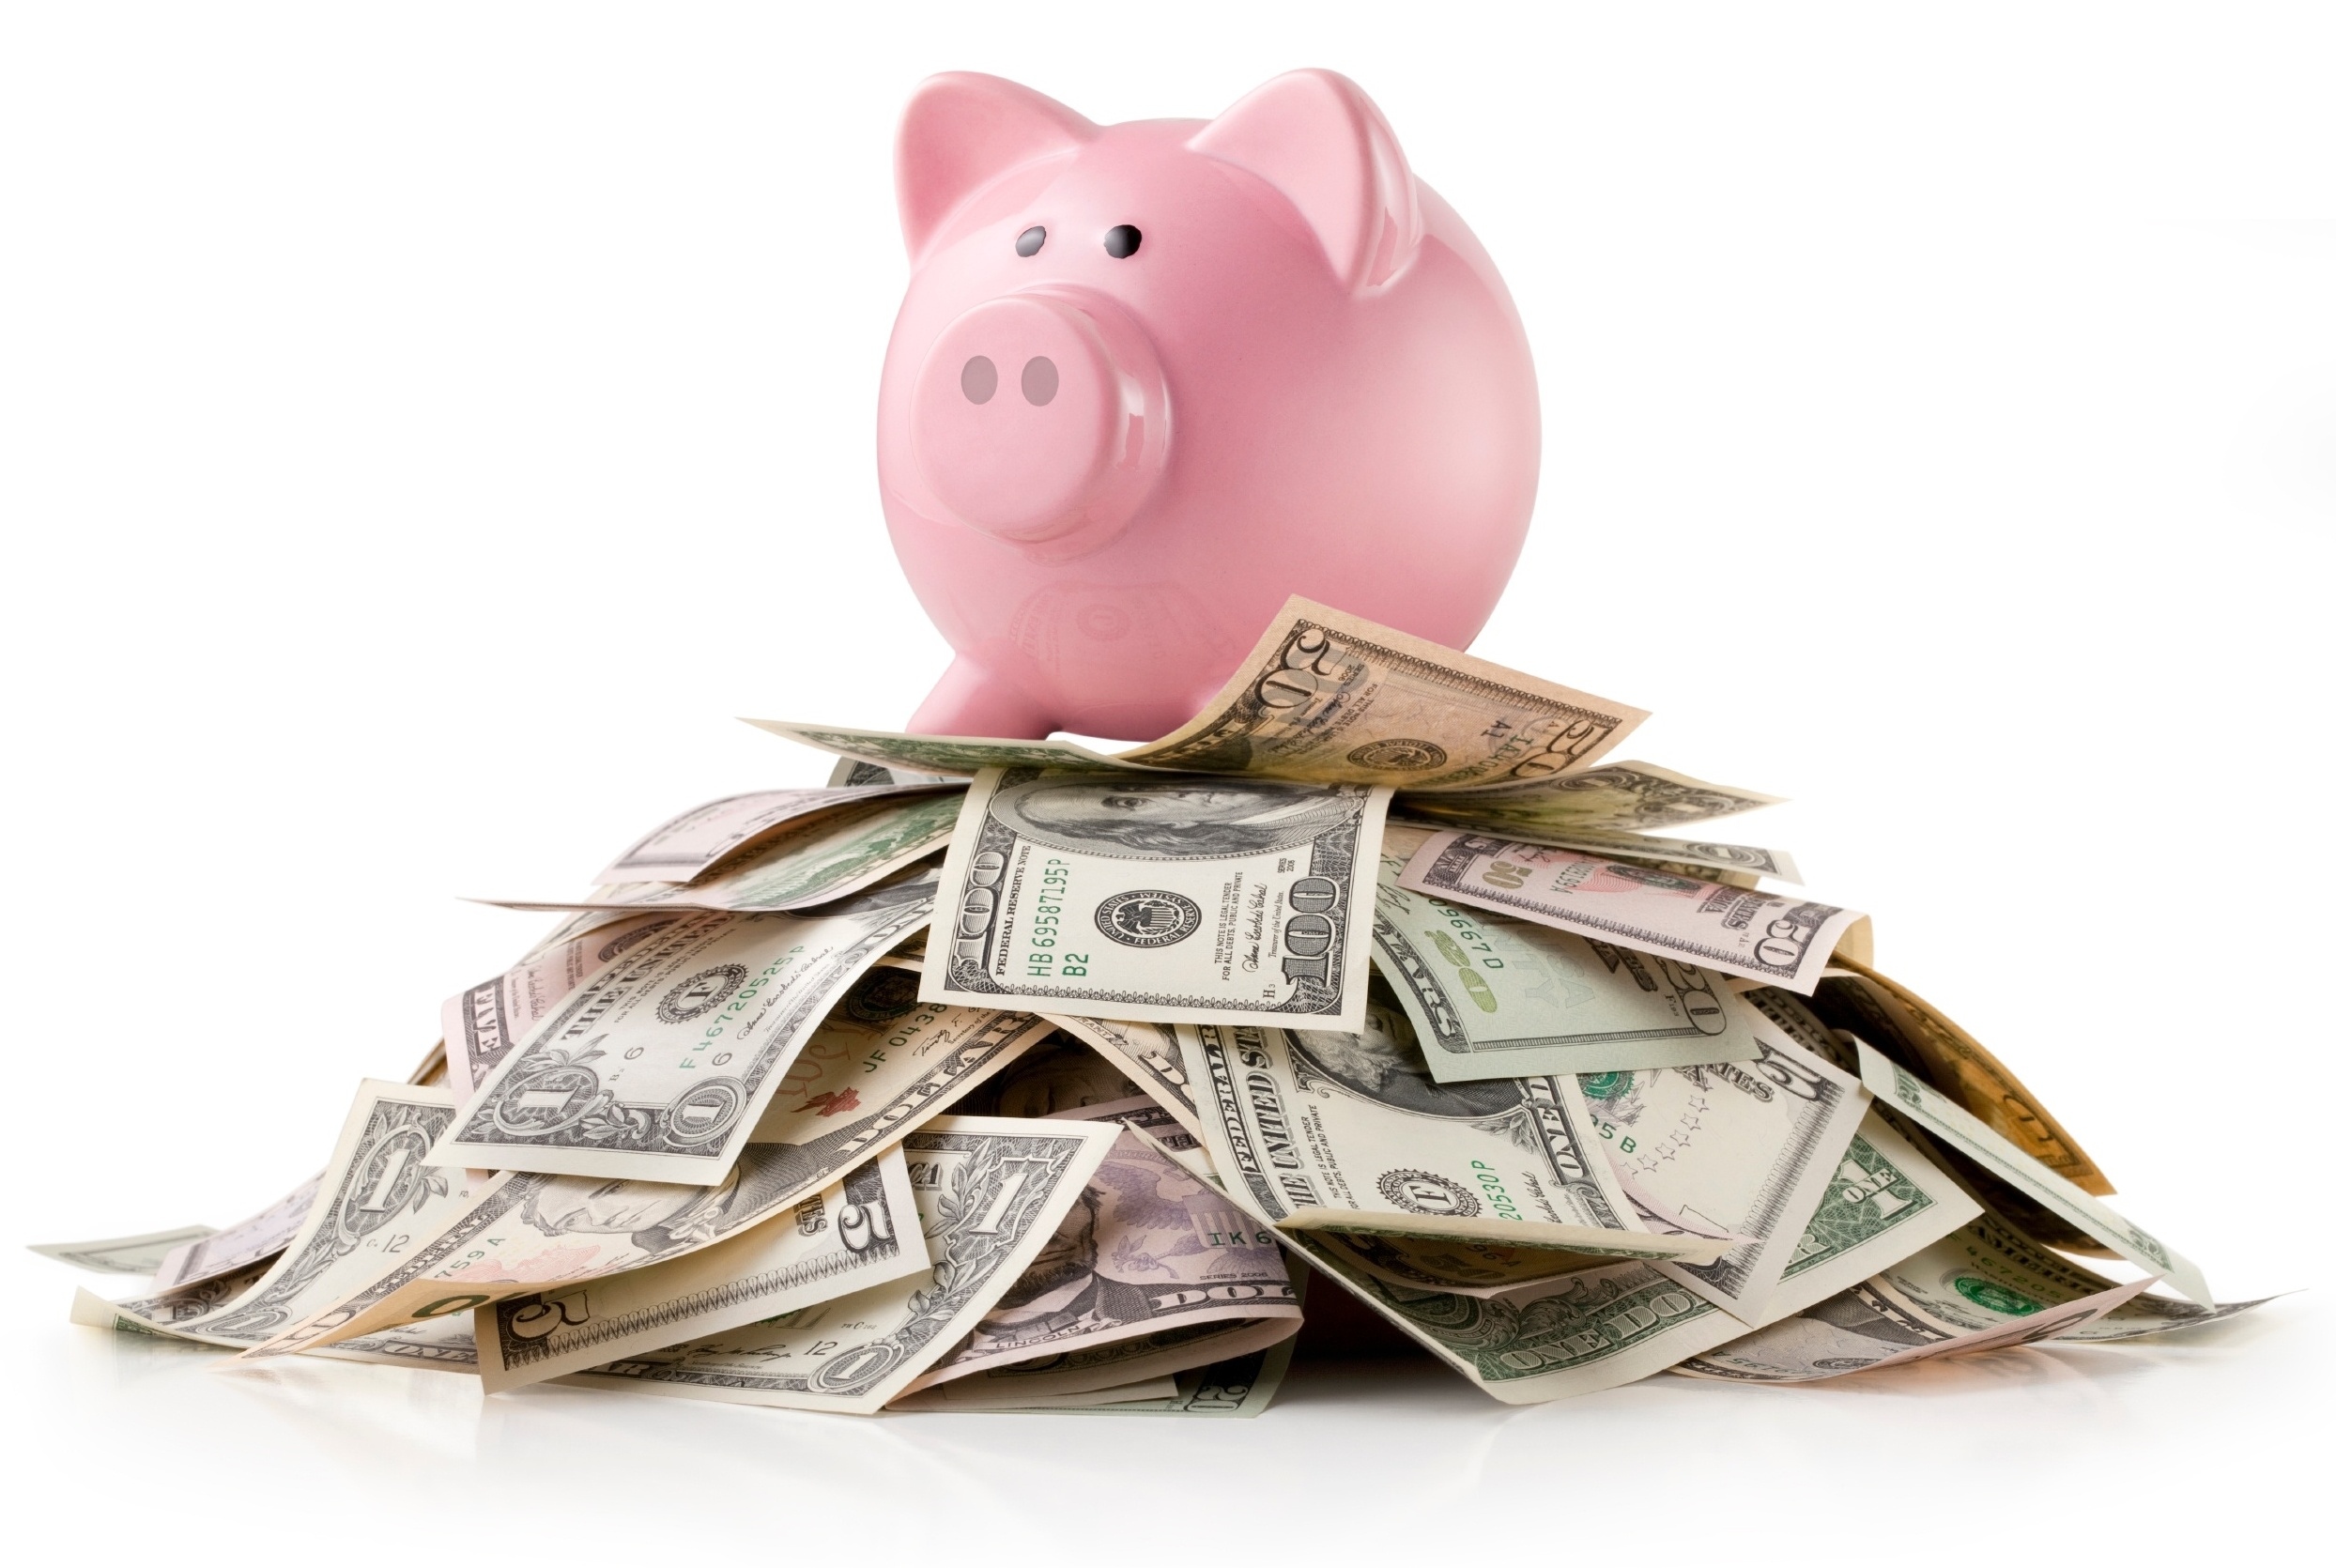 Piggy Bank Money Sales Promotional Products